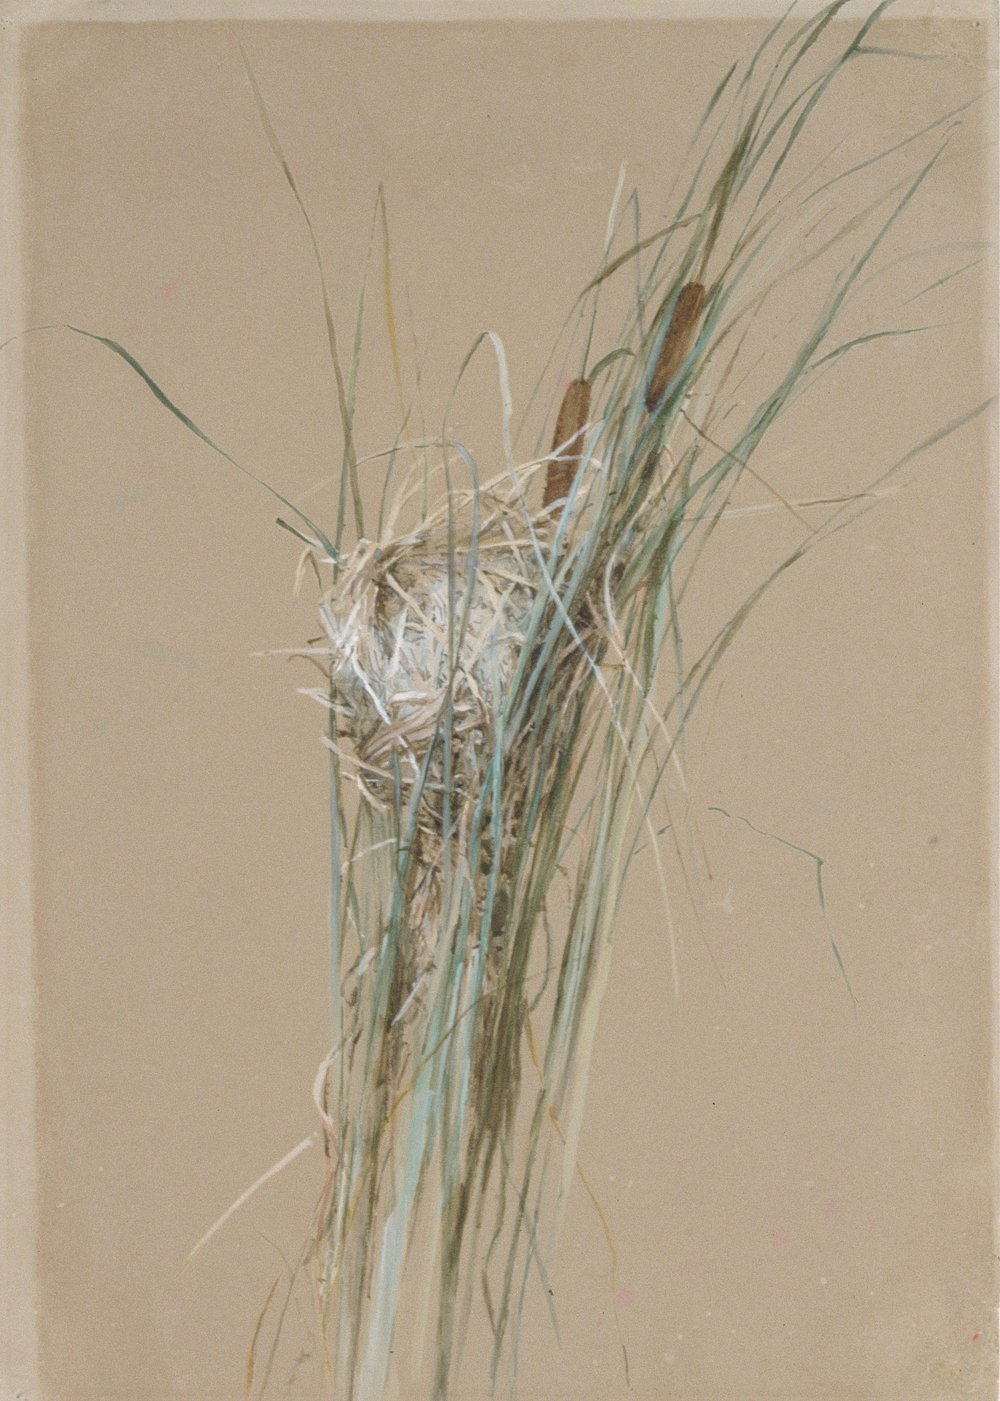 Bird's Nest in Cattails.  Painted in 1875 by Fidelia Bridges using watercolor and gouache. This painting is housed at The Metropolitan Museum of Art. Image in the Public Domain and can be accessed  HERE .